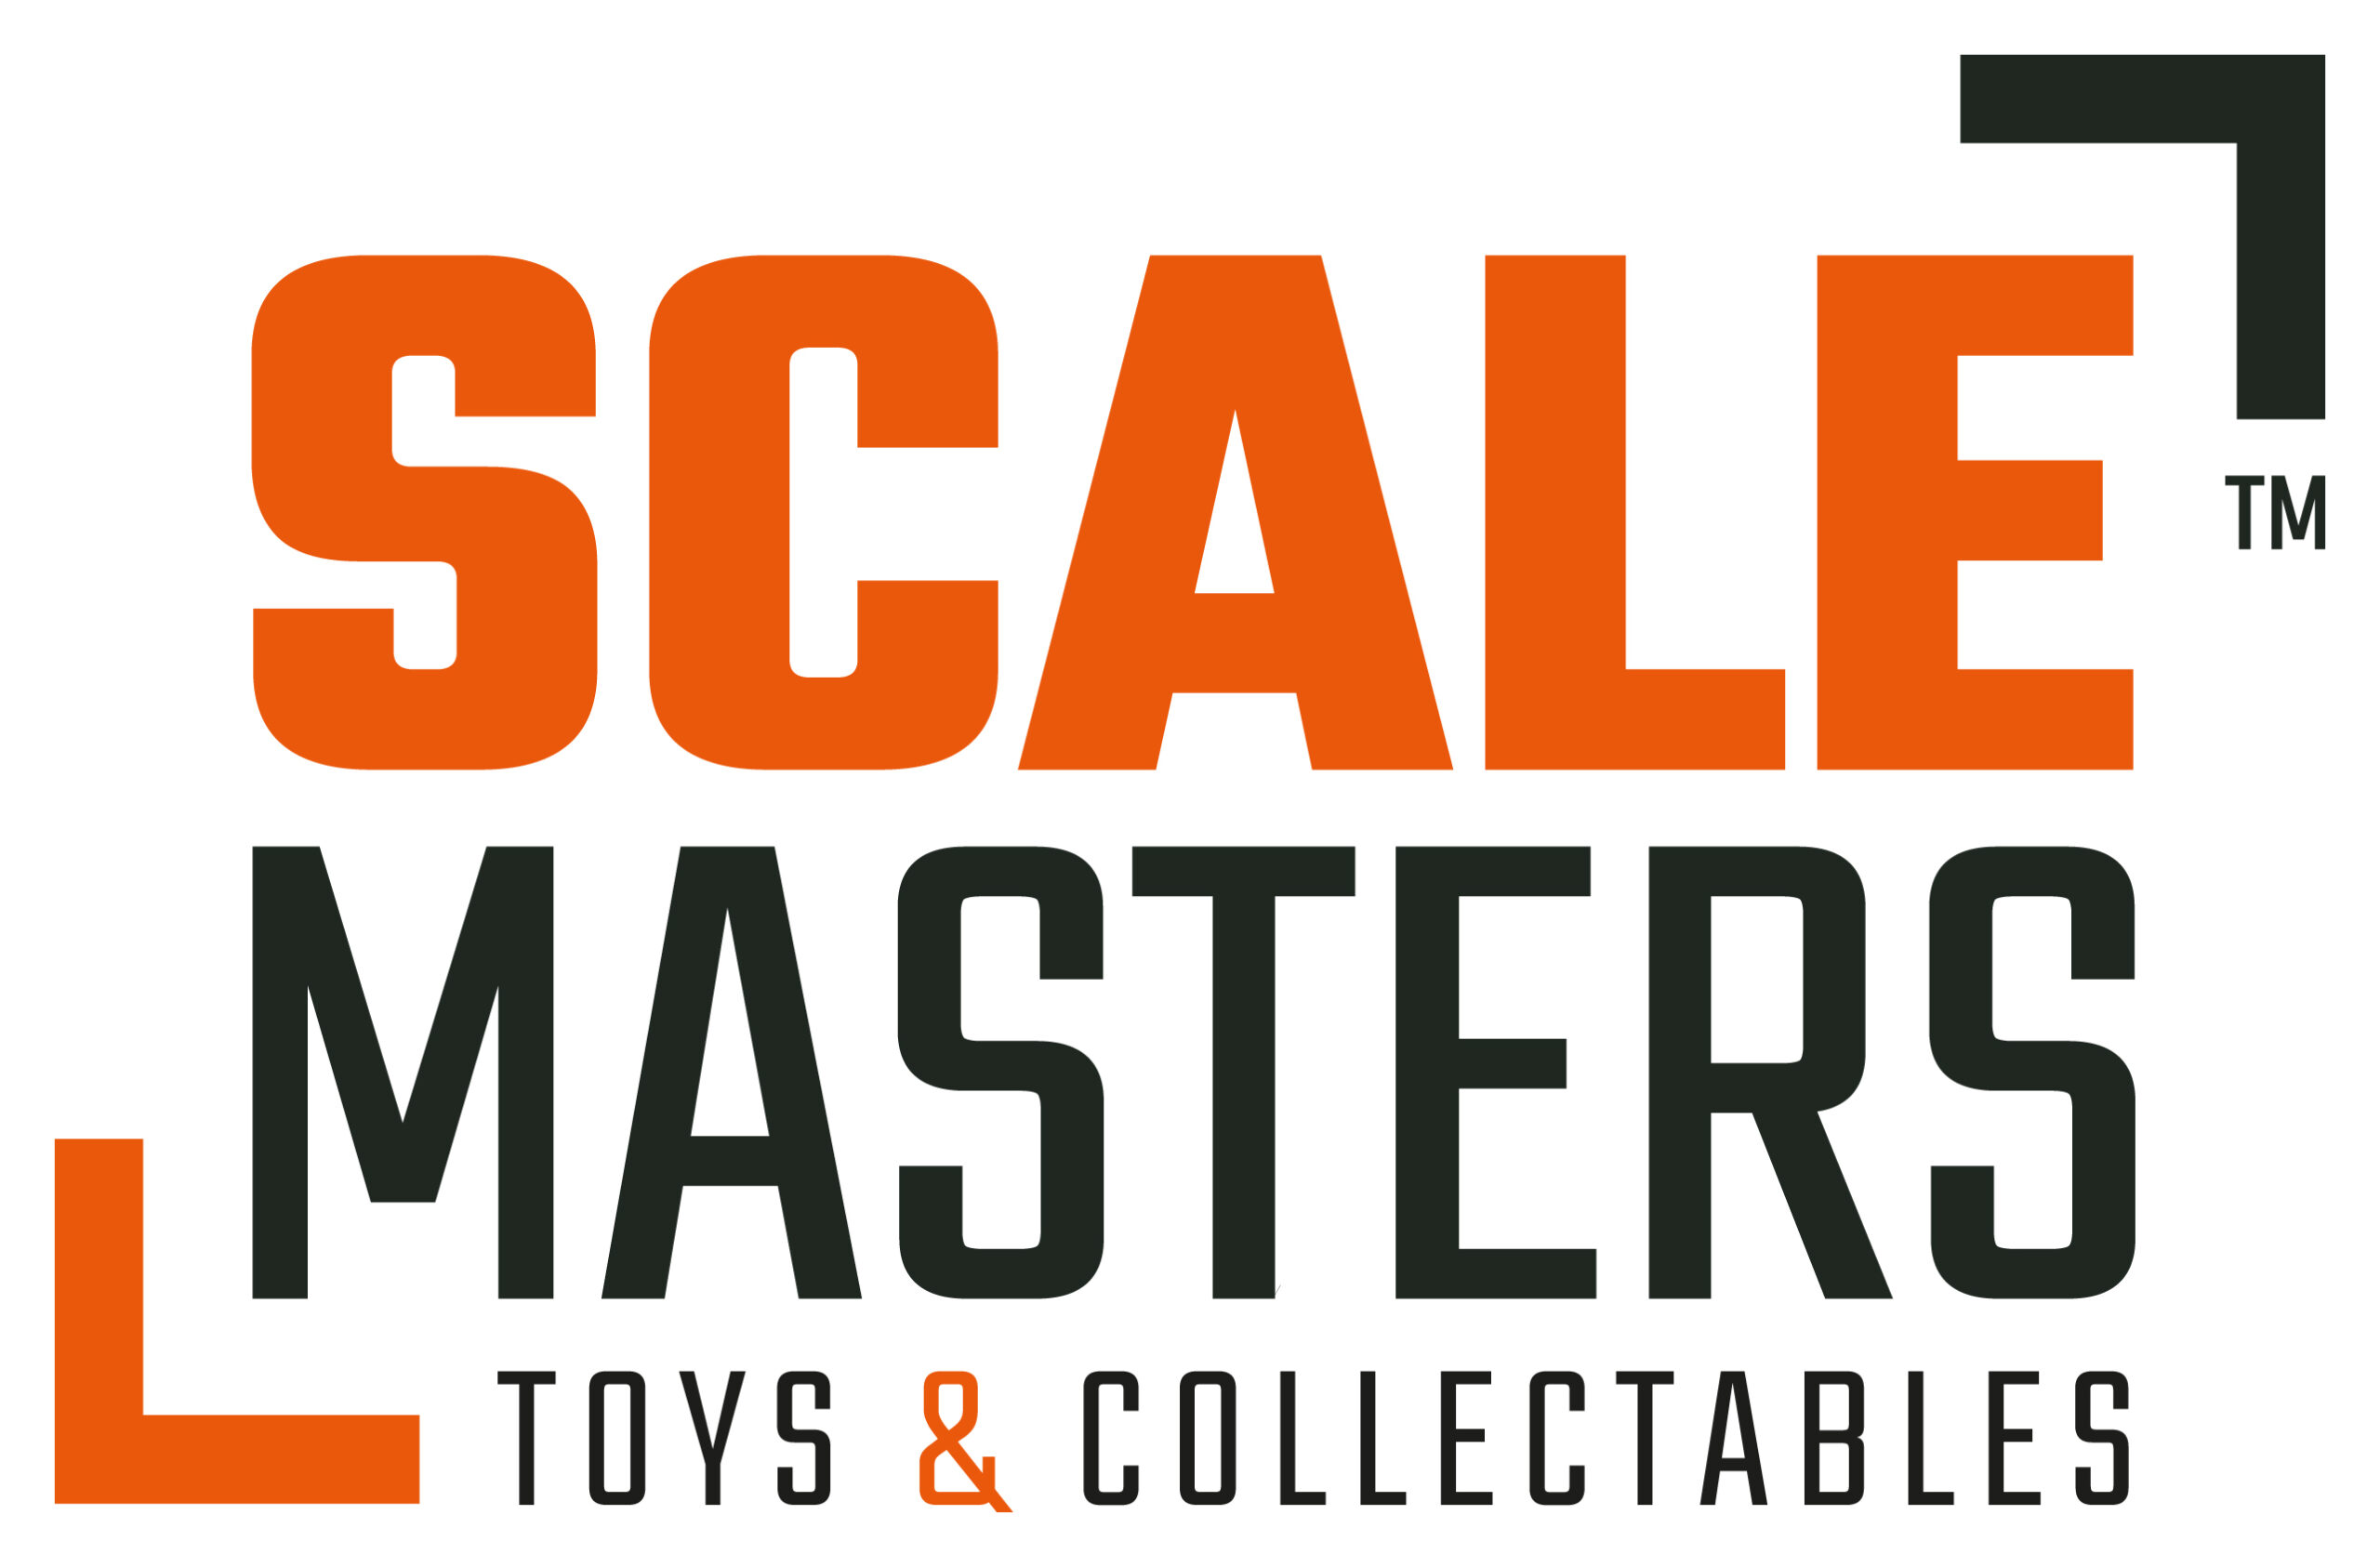 ScaleMasters